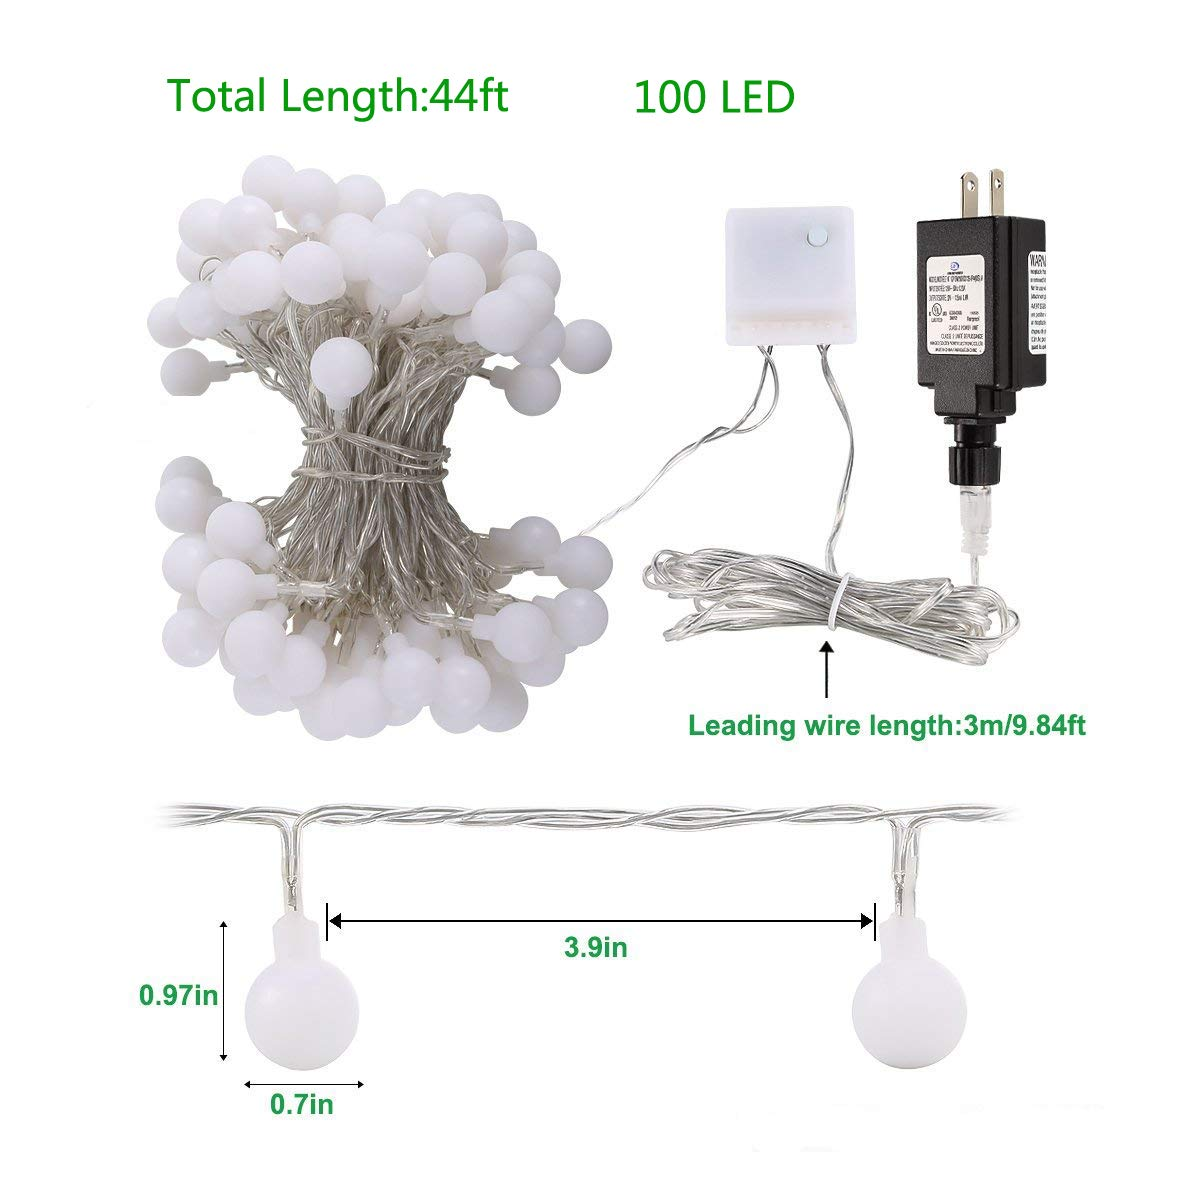 Tomshine Globe String Lights With Remote Timer 44ft 100 Led Tree Wiring Diagram Dimmable Plug In Light Outdoor Decorative Waterproof Fairy For